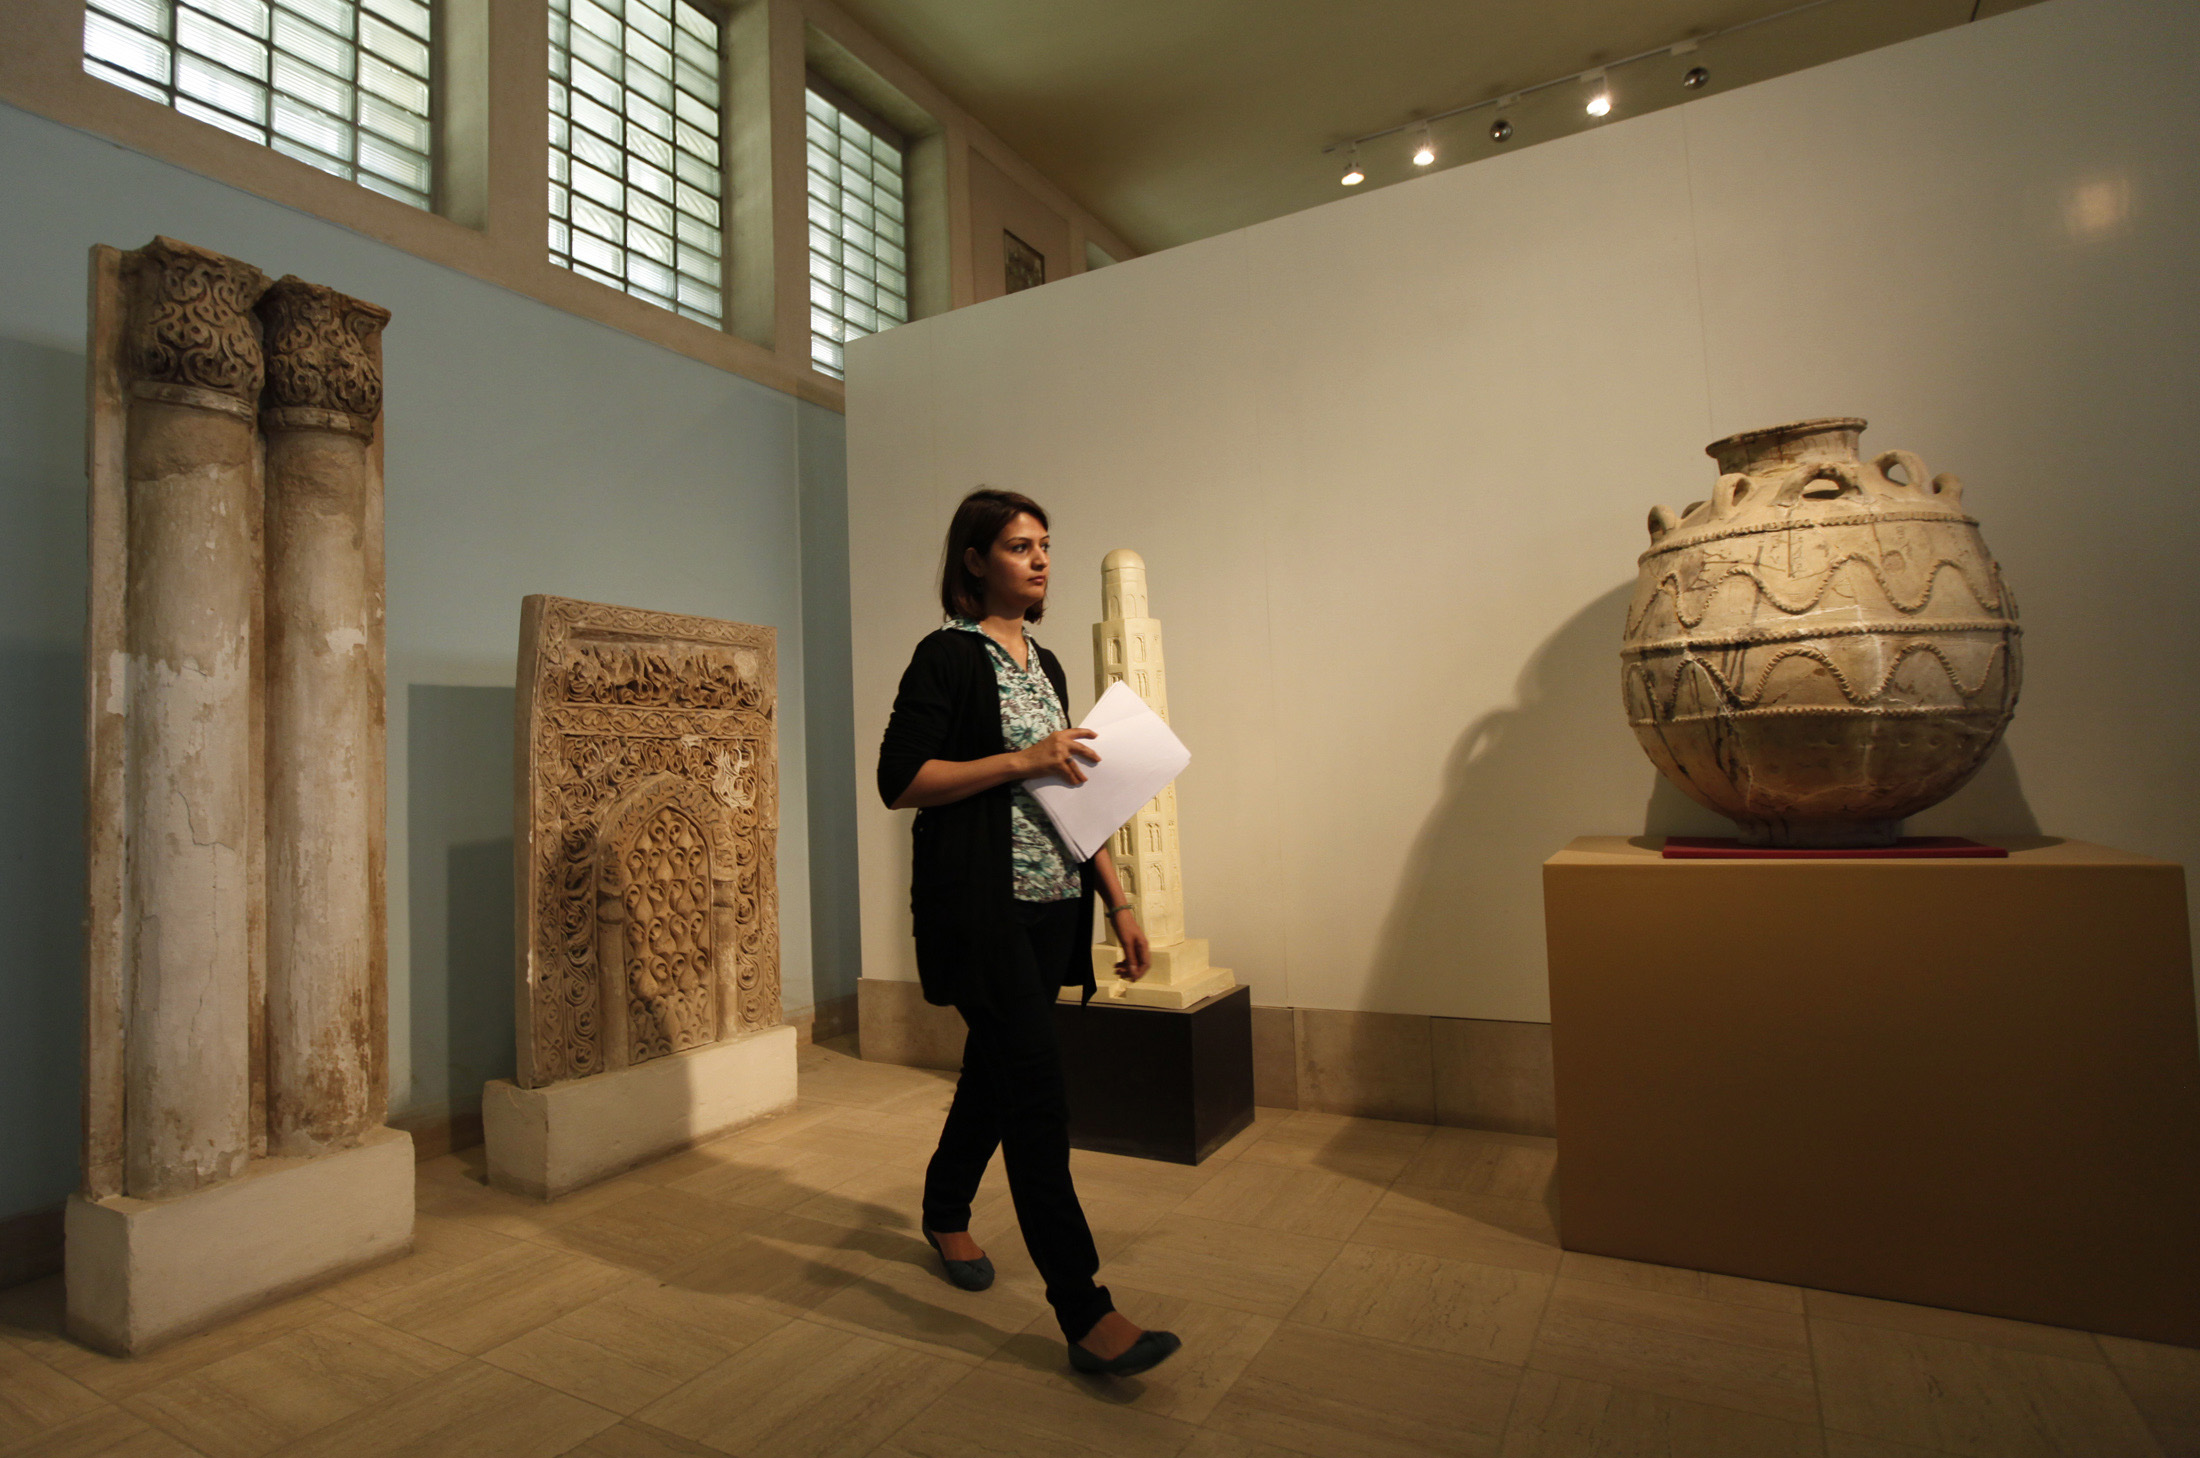 A woman walks past artifacts at the National Museum of Iraq in Baghdad April 8, 2013.